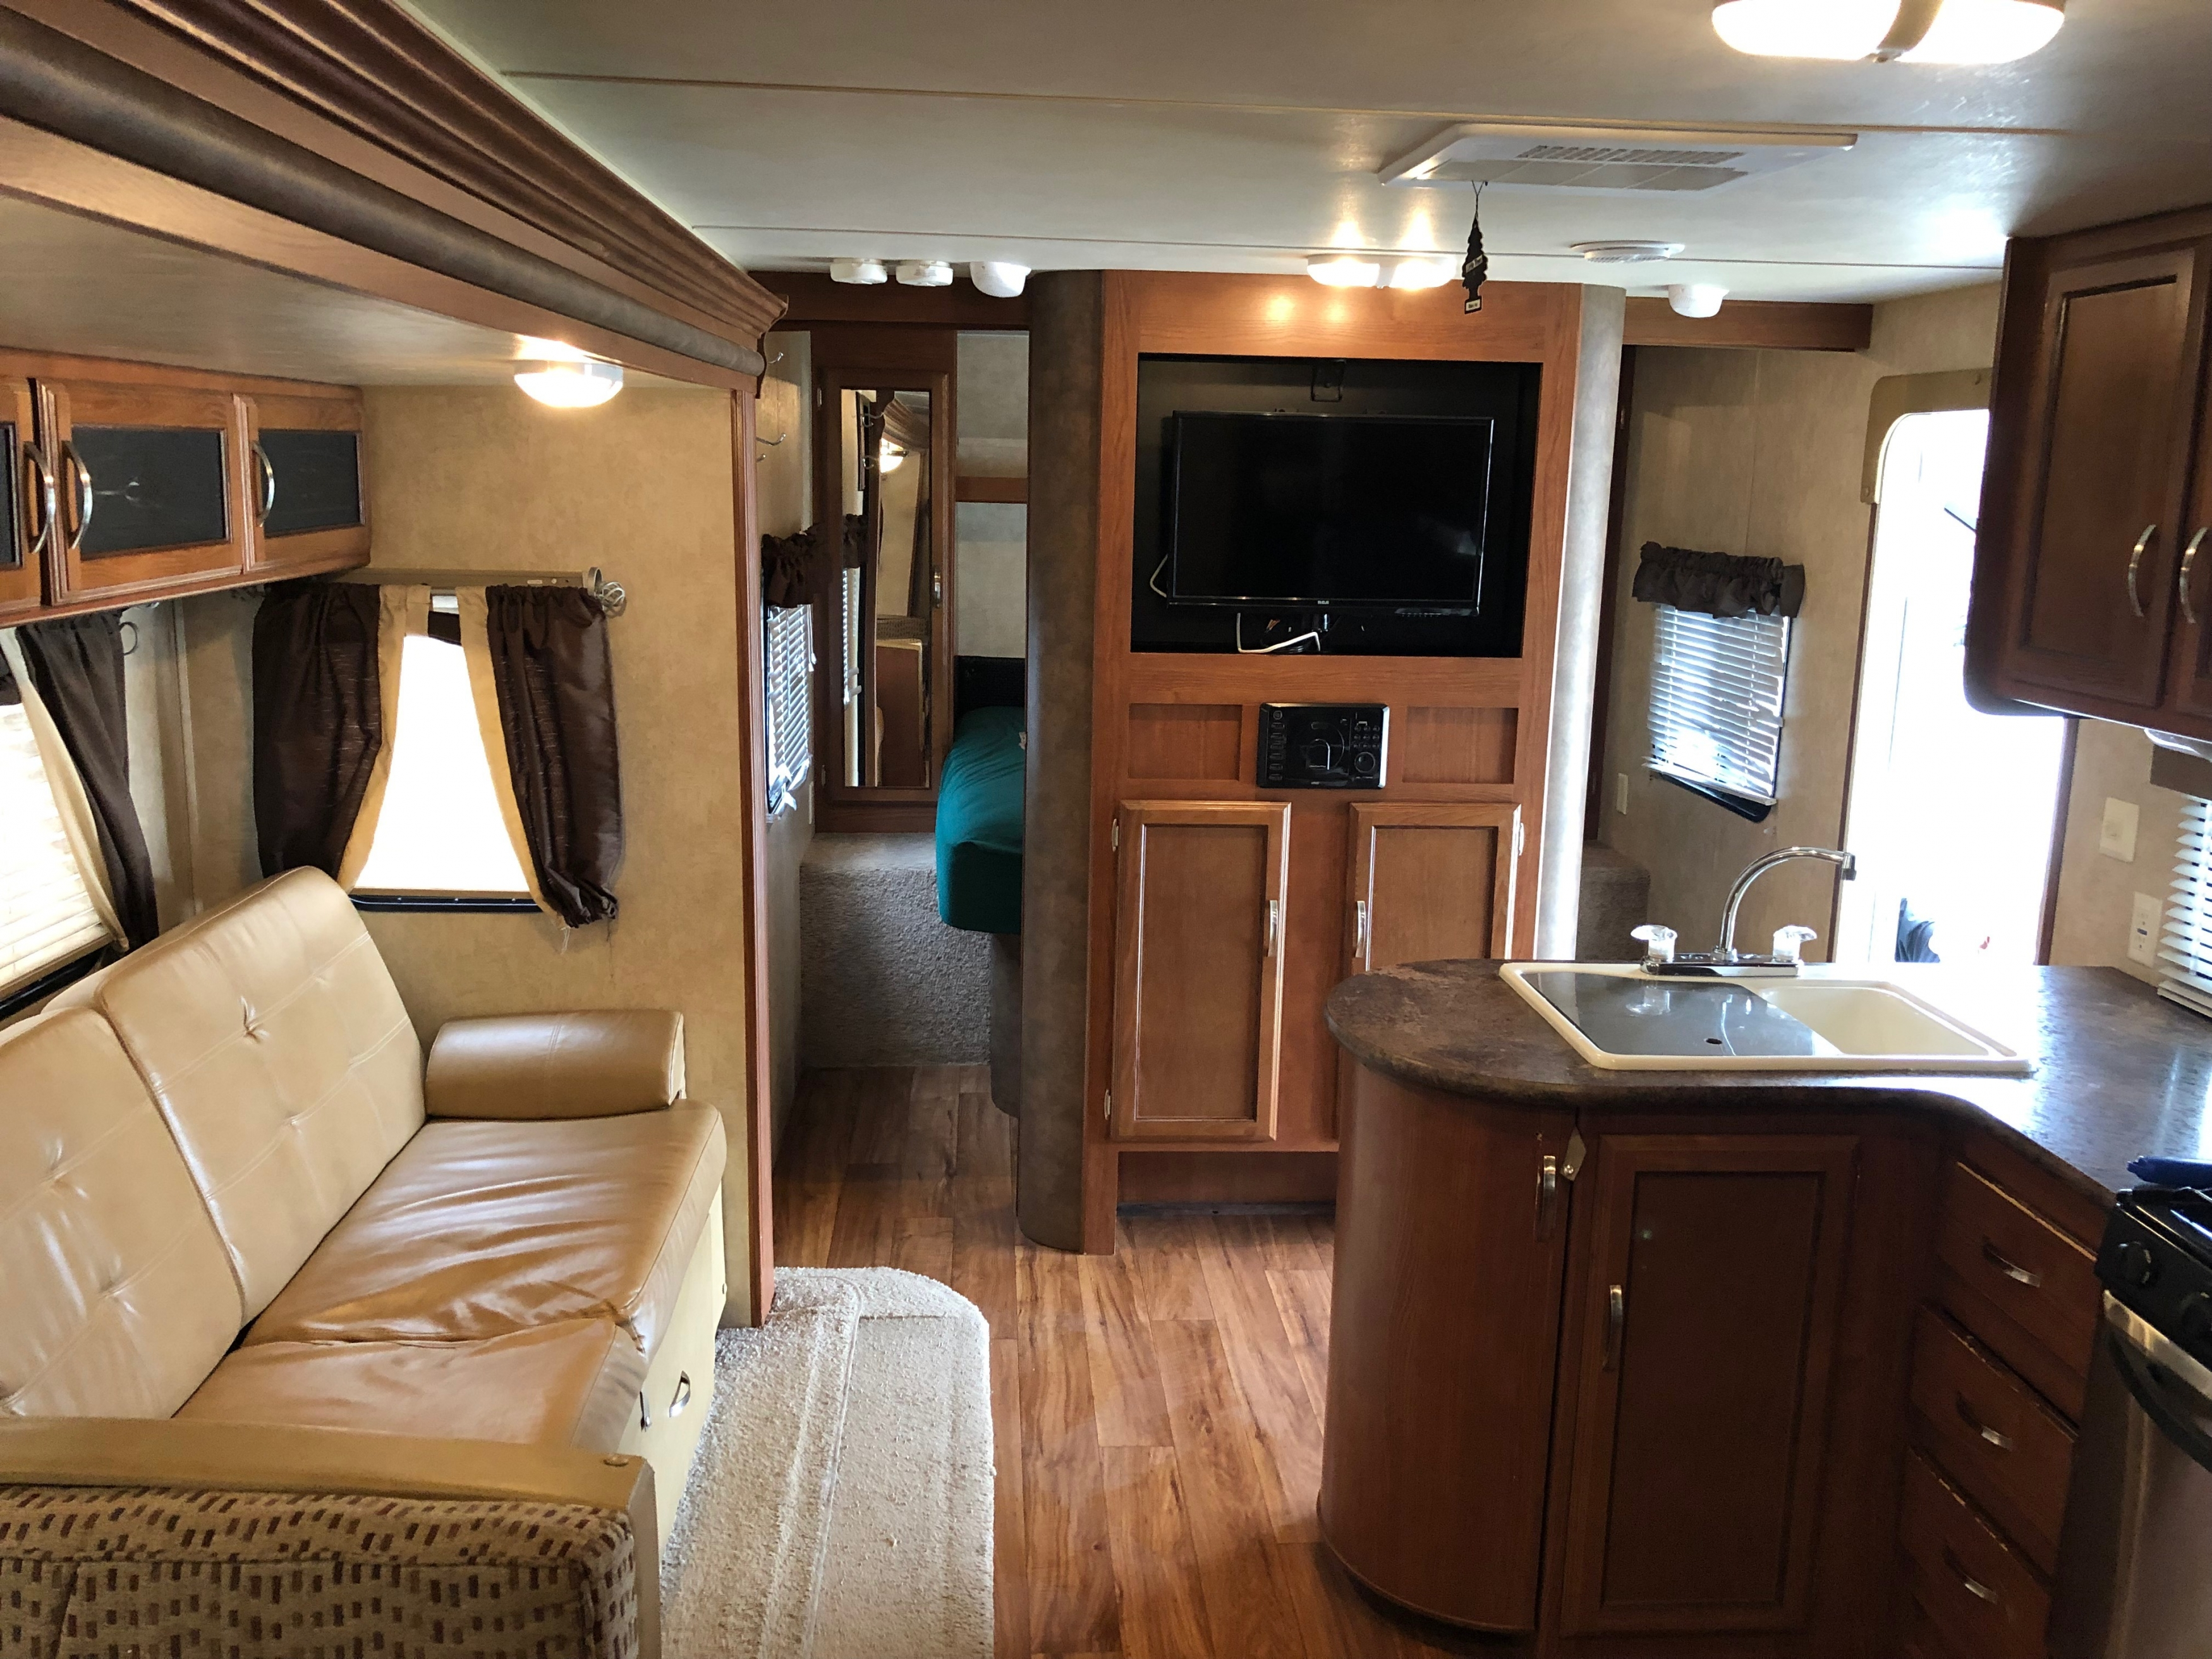 27' Wildwood Trailer with Slide Out Kitchen, Couch, & Forward View